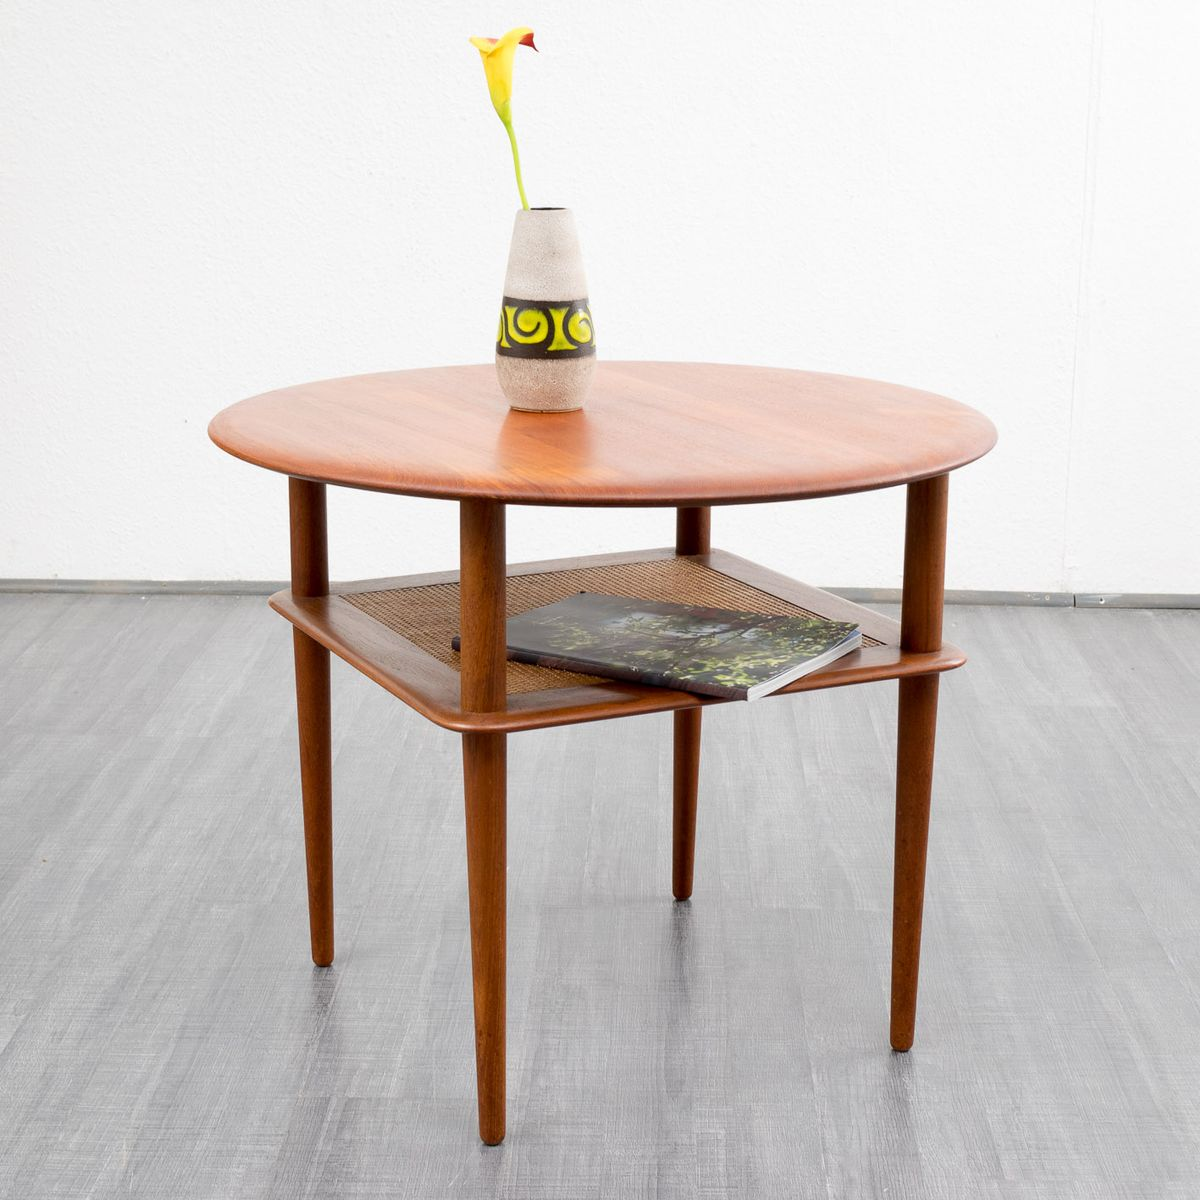 Danish Coffee Table By Grete Jalk 1960s For Sale At Pamono